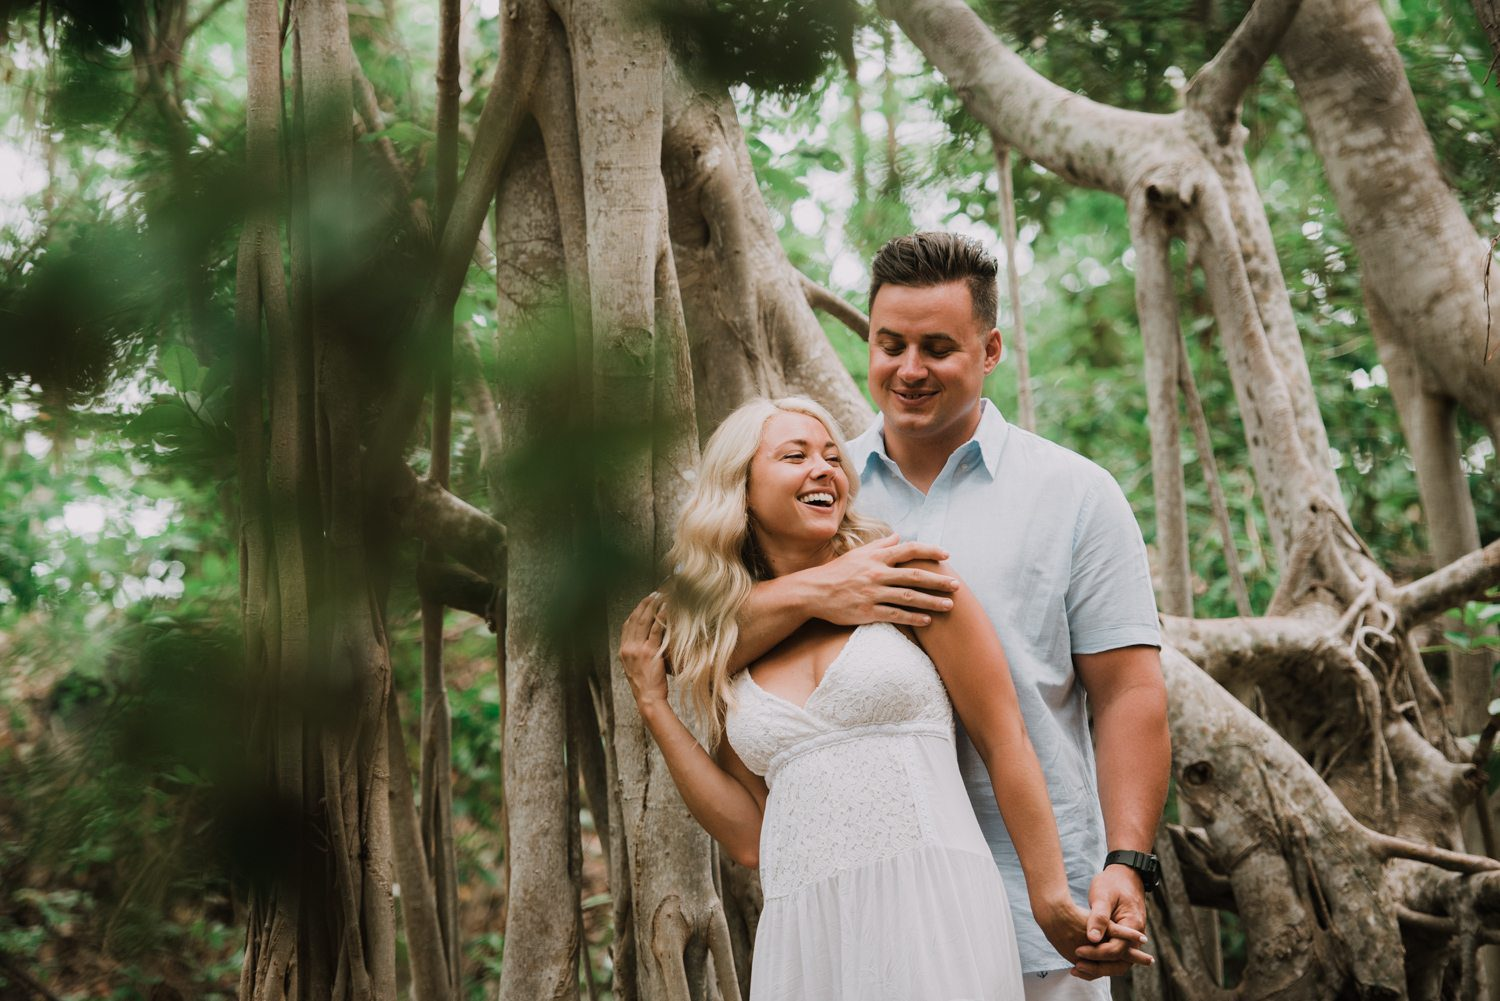 fort zachary taylor snipes key west engagement 16 - Key West Engagement Session - Cecilia & Dominick